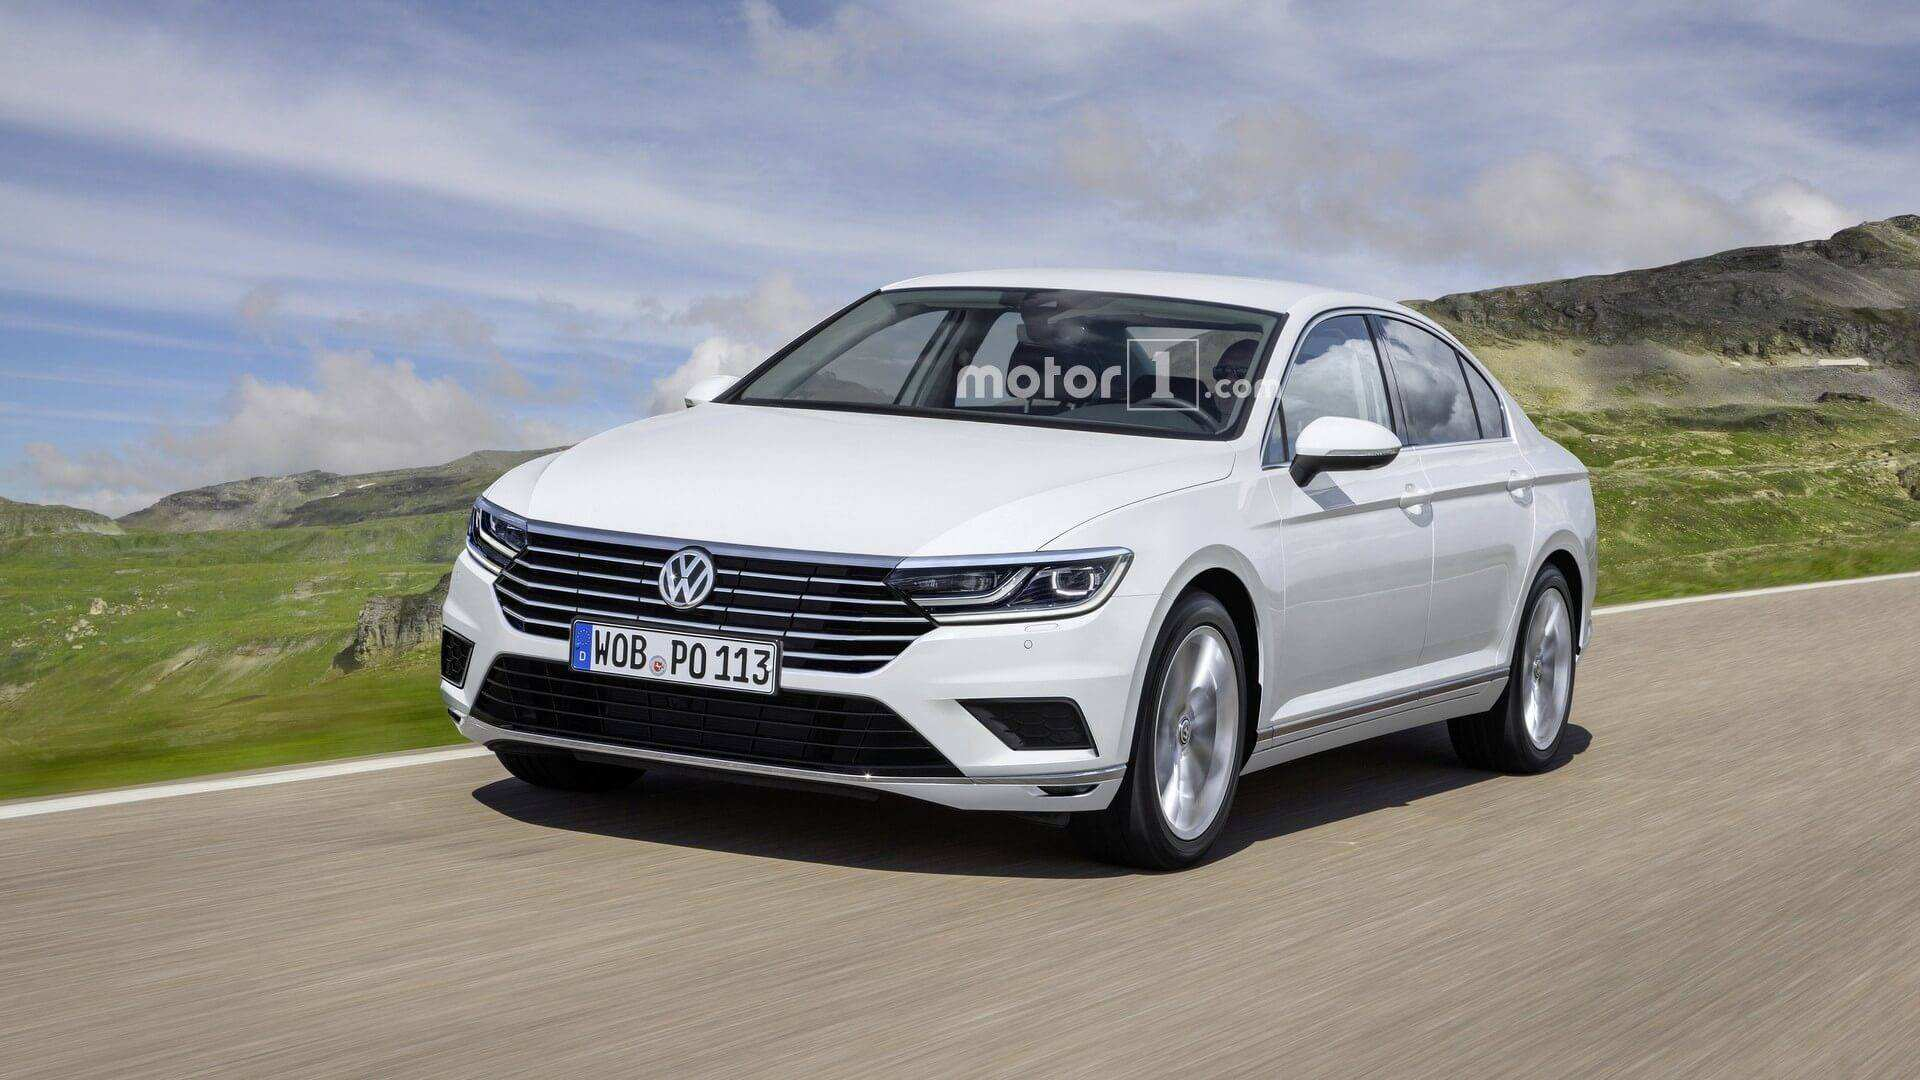 93 New Next Generation Vw Cc Price And Release Date